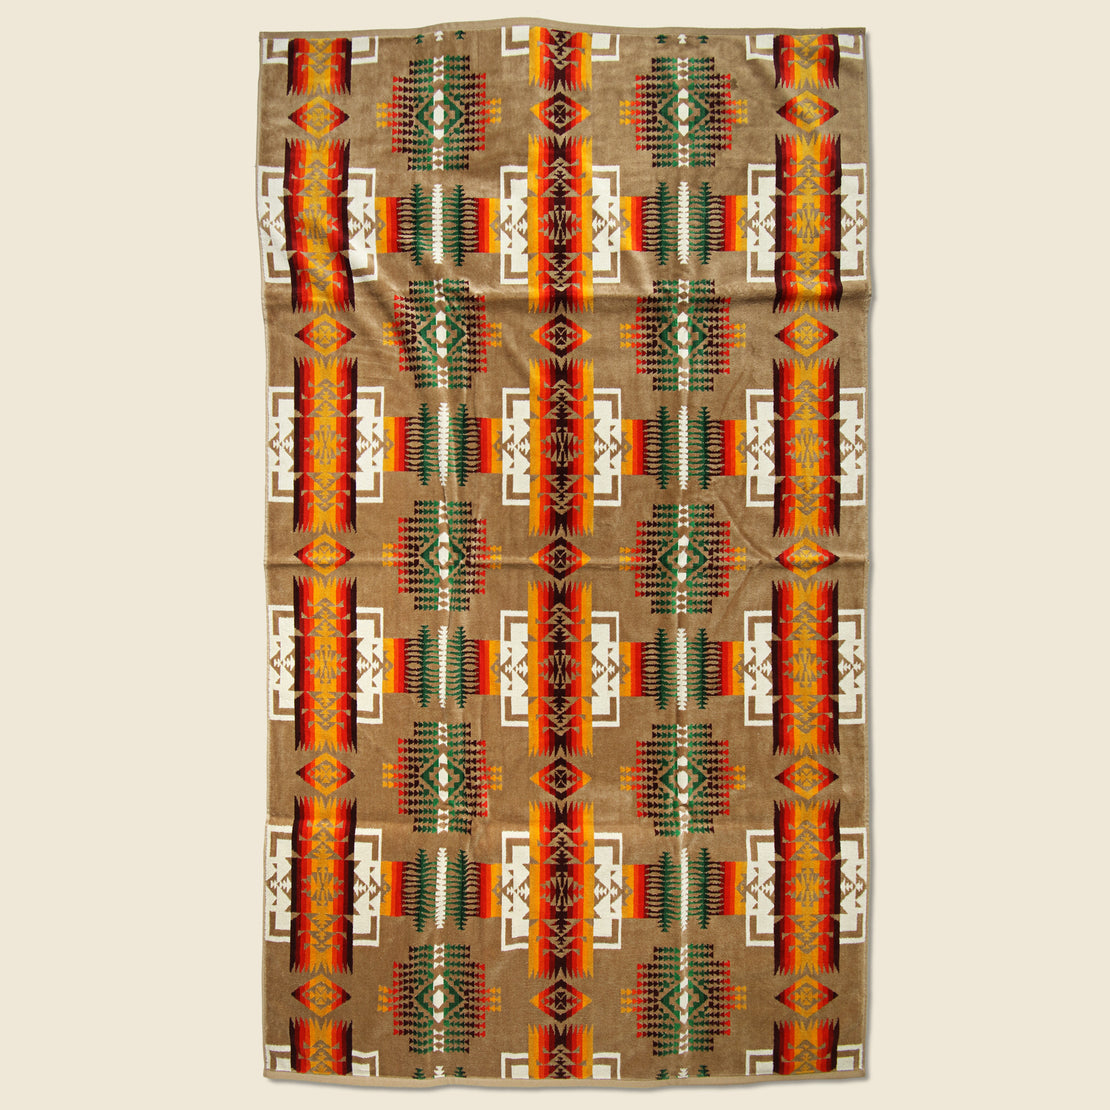 Pendleton Chief Joseph Towel - Khaki